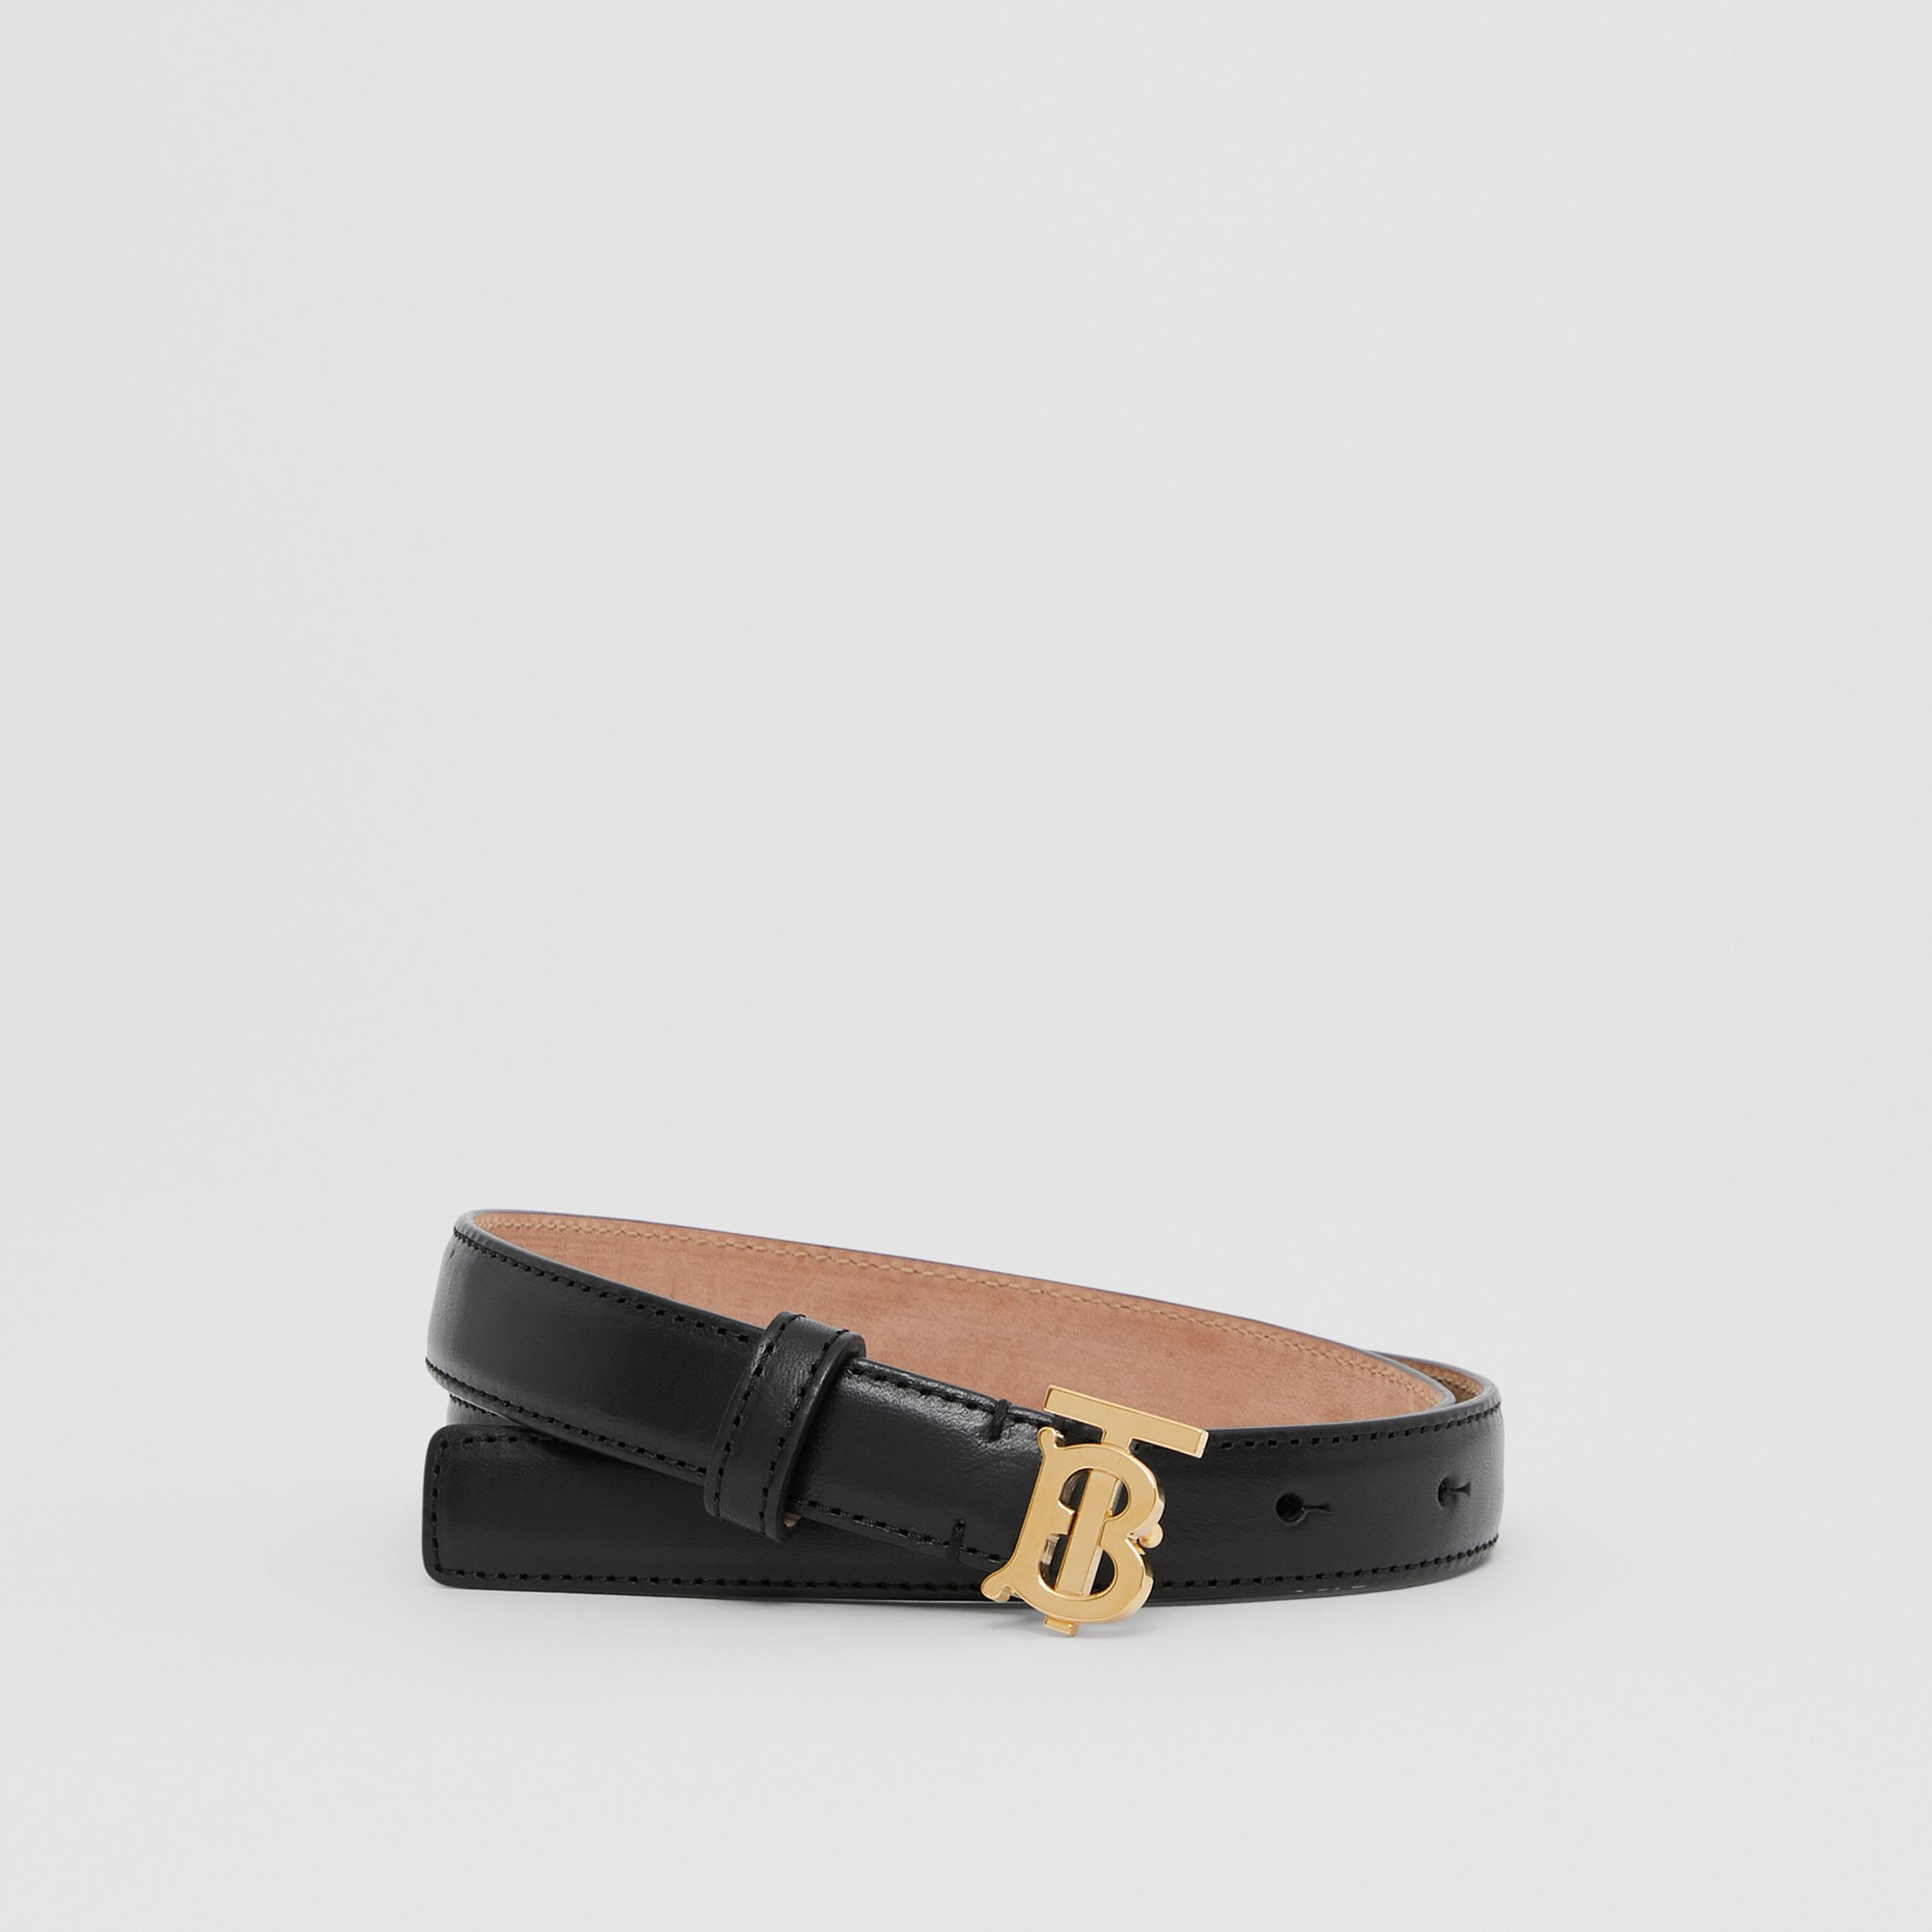 Monogram Motif Leather Belt in Black/light Gold - Women | Burberry - 1